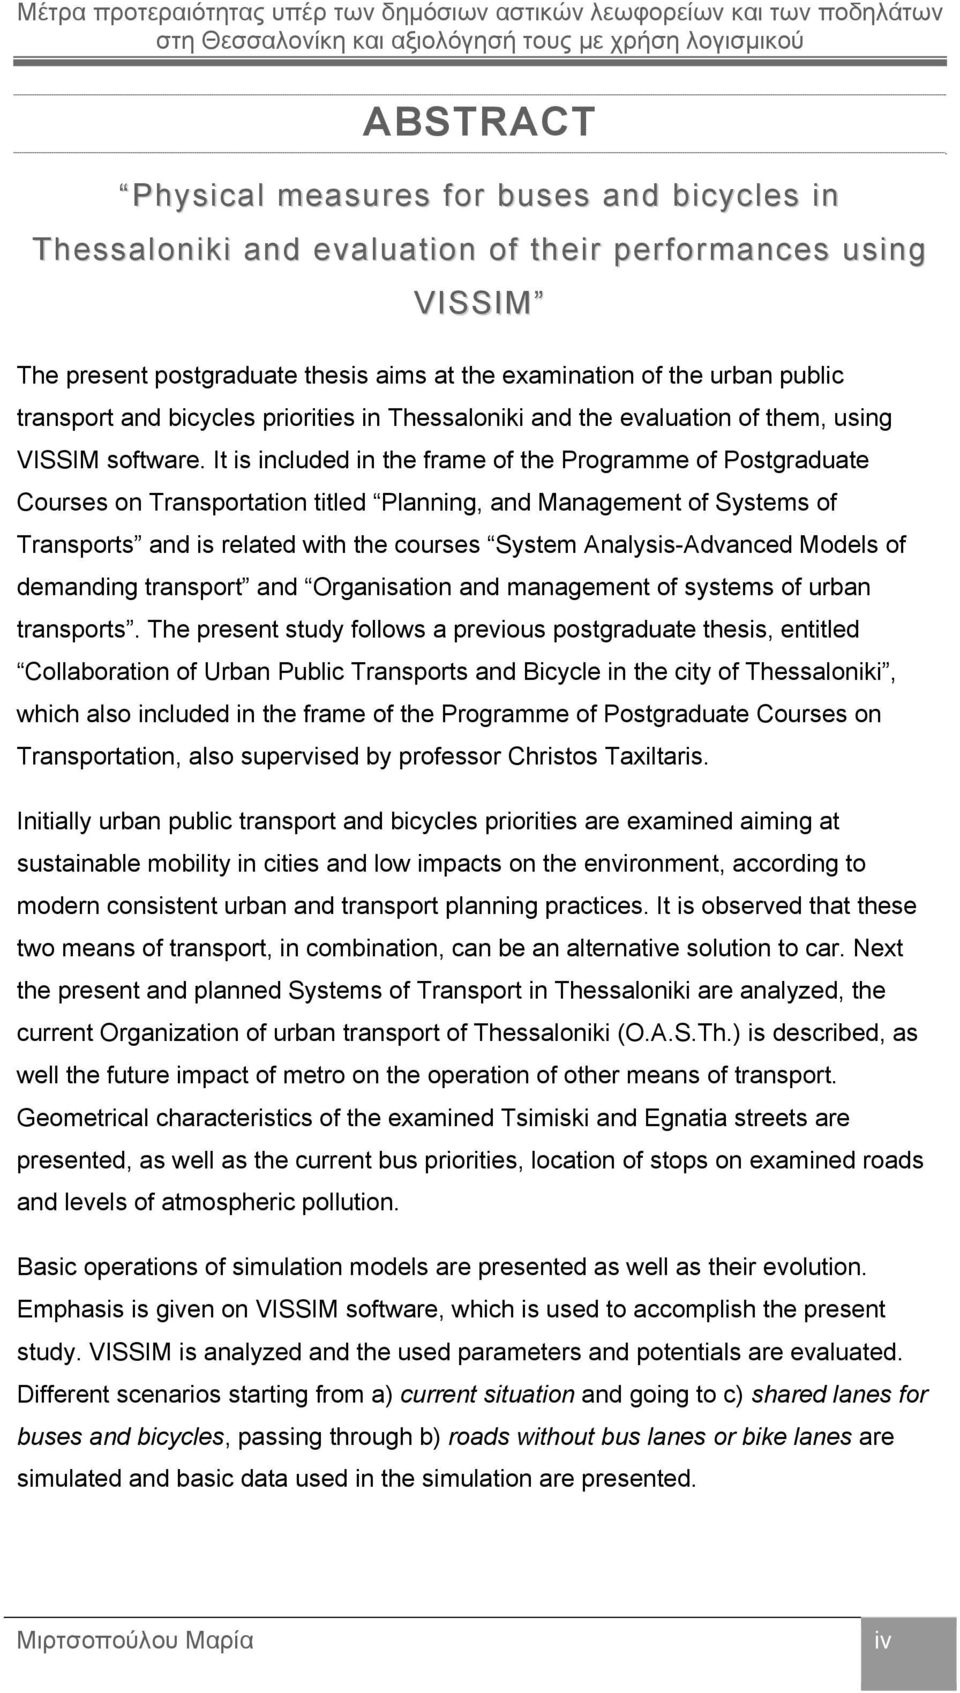 It is included in the frame of the Programme of Postgraduate Courses on Transportation titled Planning, and Management of Systems of Transports and is related with the courses System